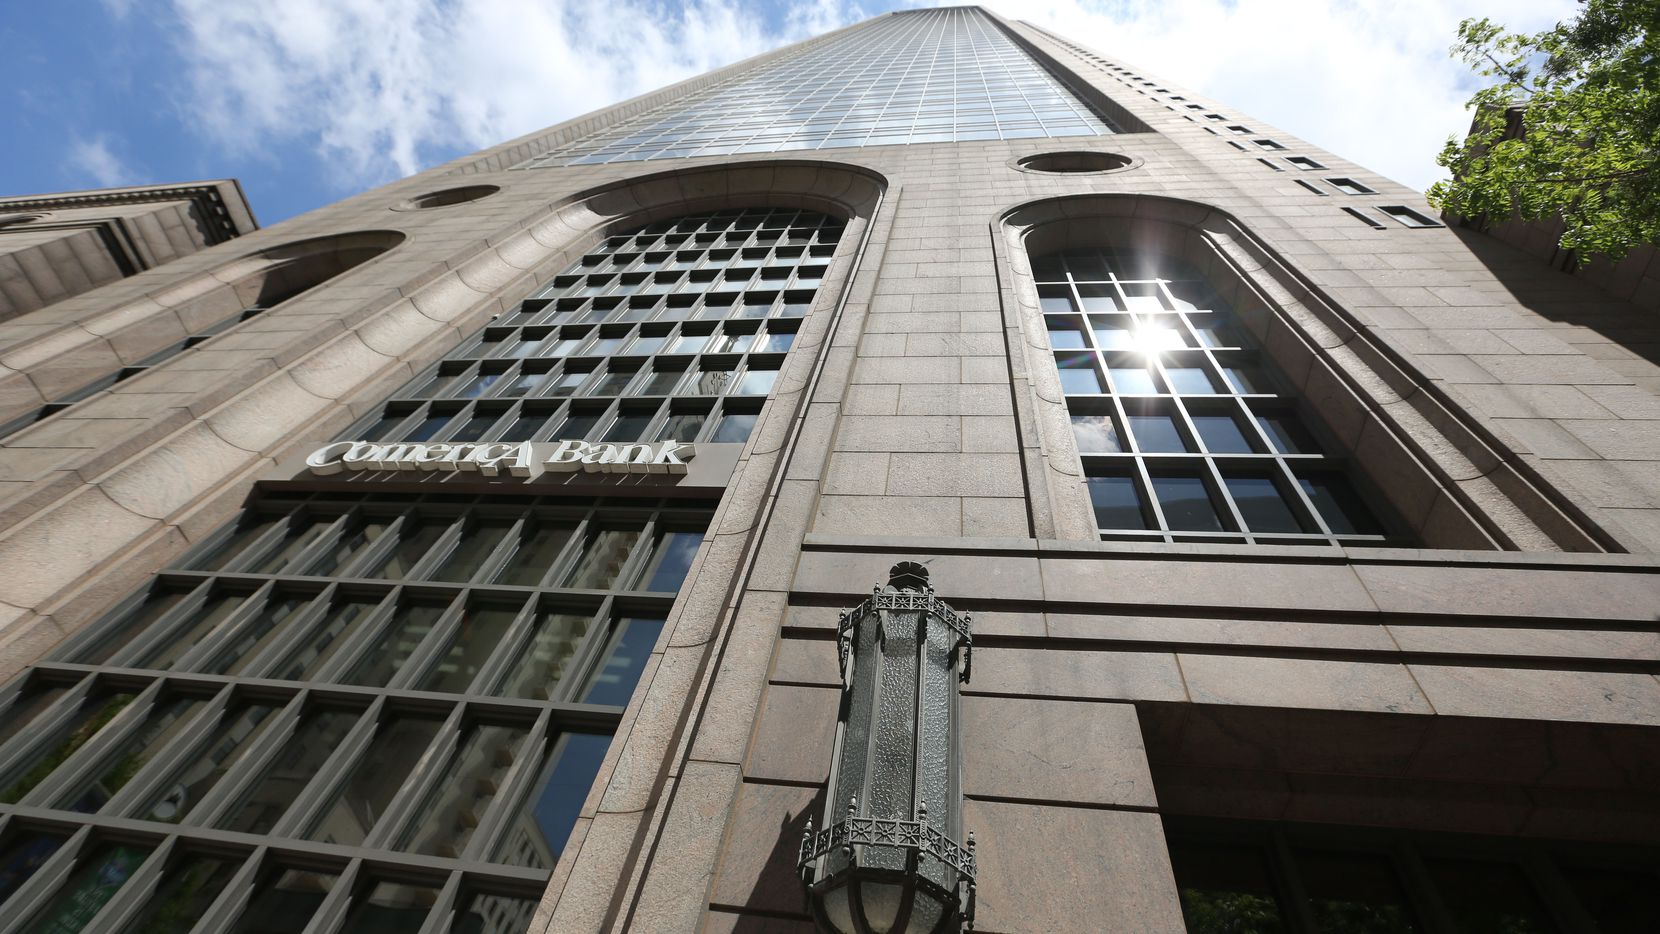 The 60-story Comerica Bank Tower on Main Street is owned by TriGate Capital LLC and M-M Properties.